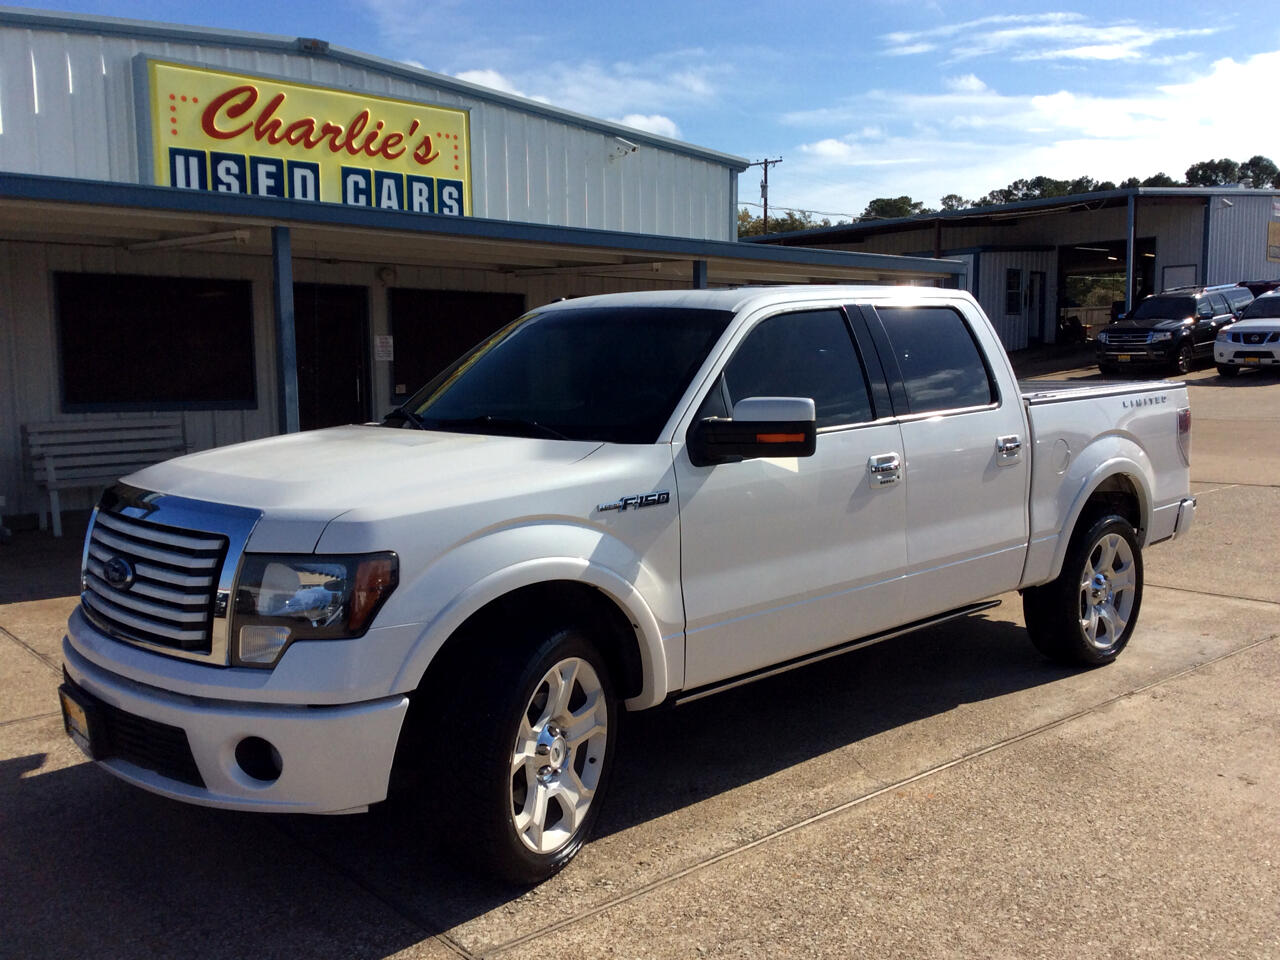 2011 Ford F-150 SuperCrew Crew Cab Limited 4WD